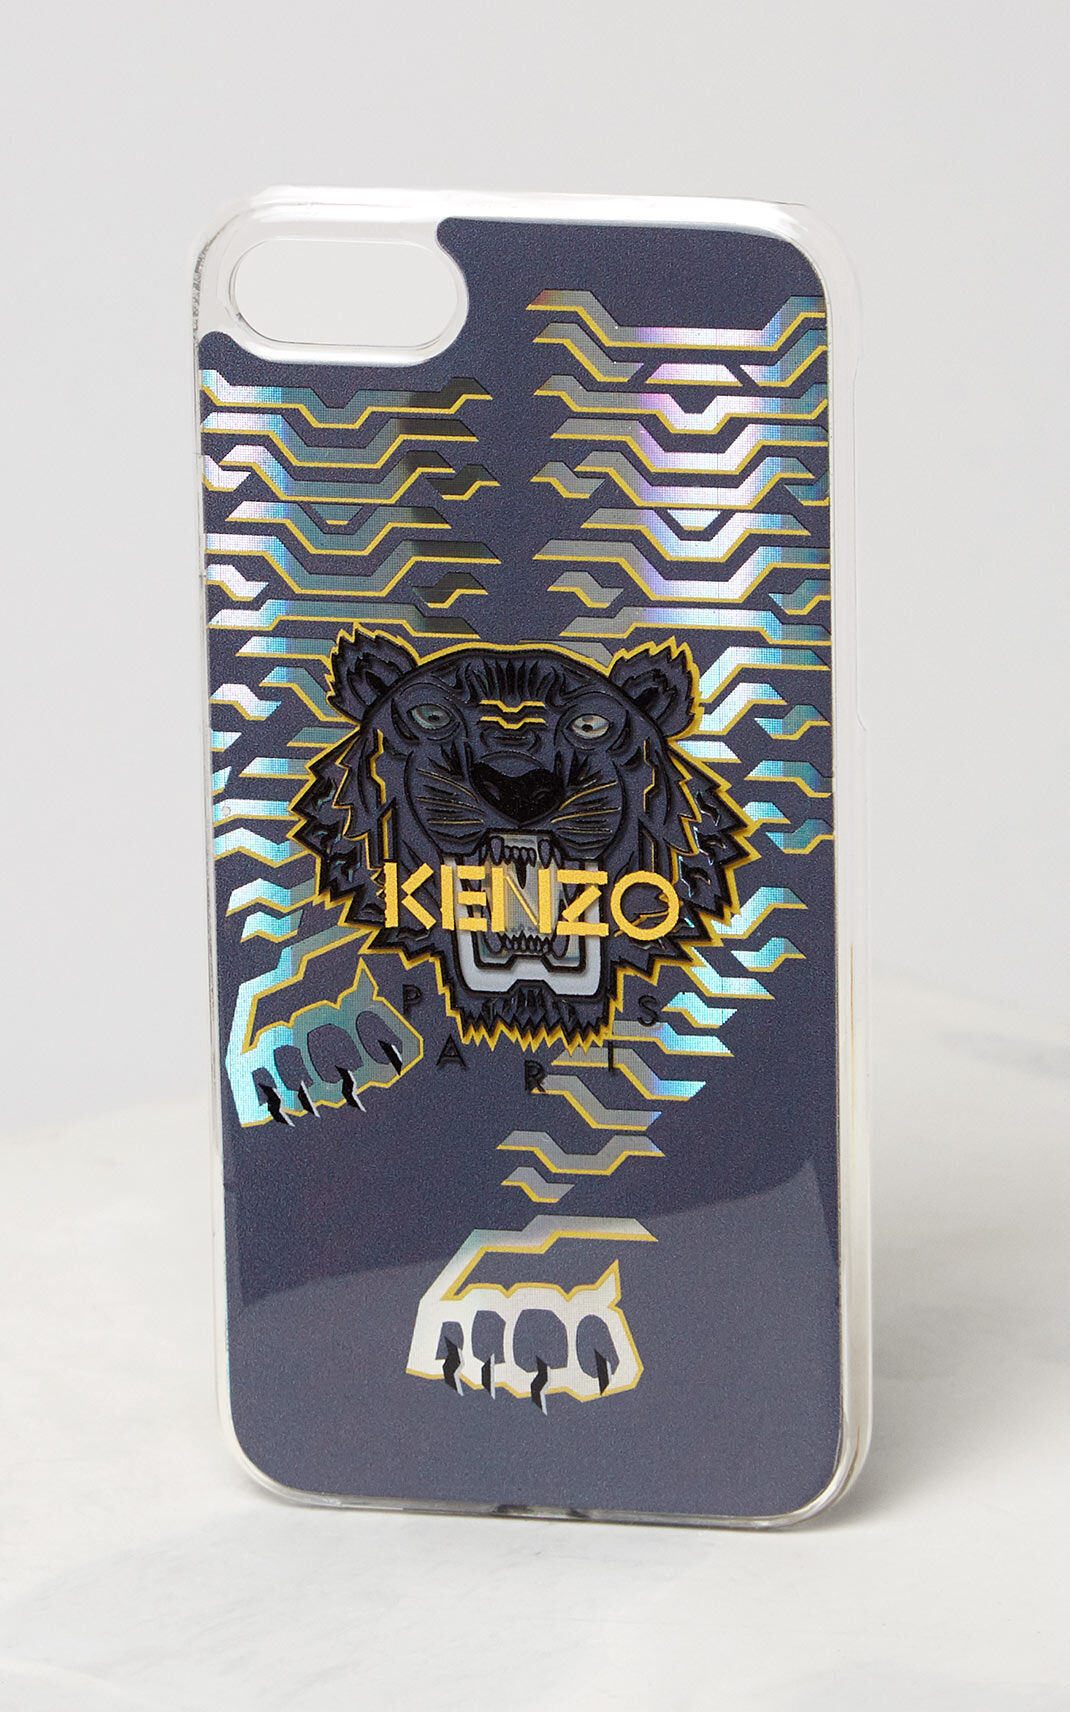 GOLD Geo Tiger iPhone 7/8 case for unisex KENZO